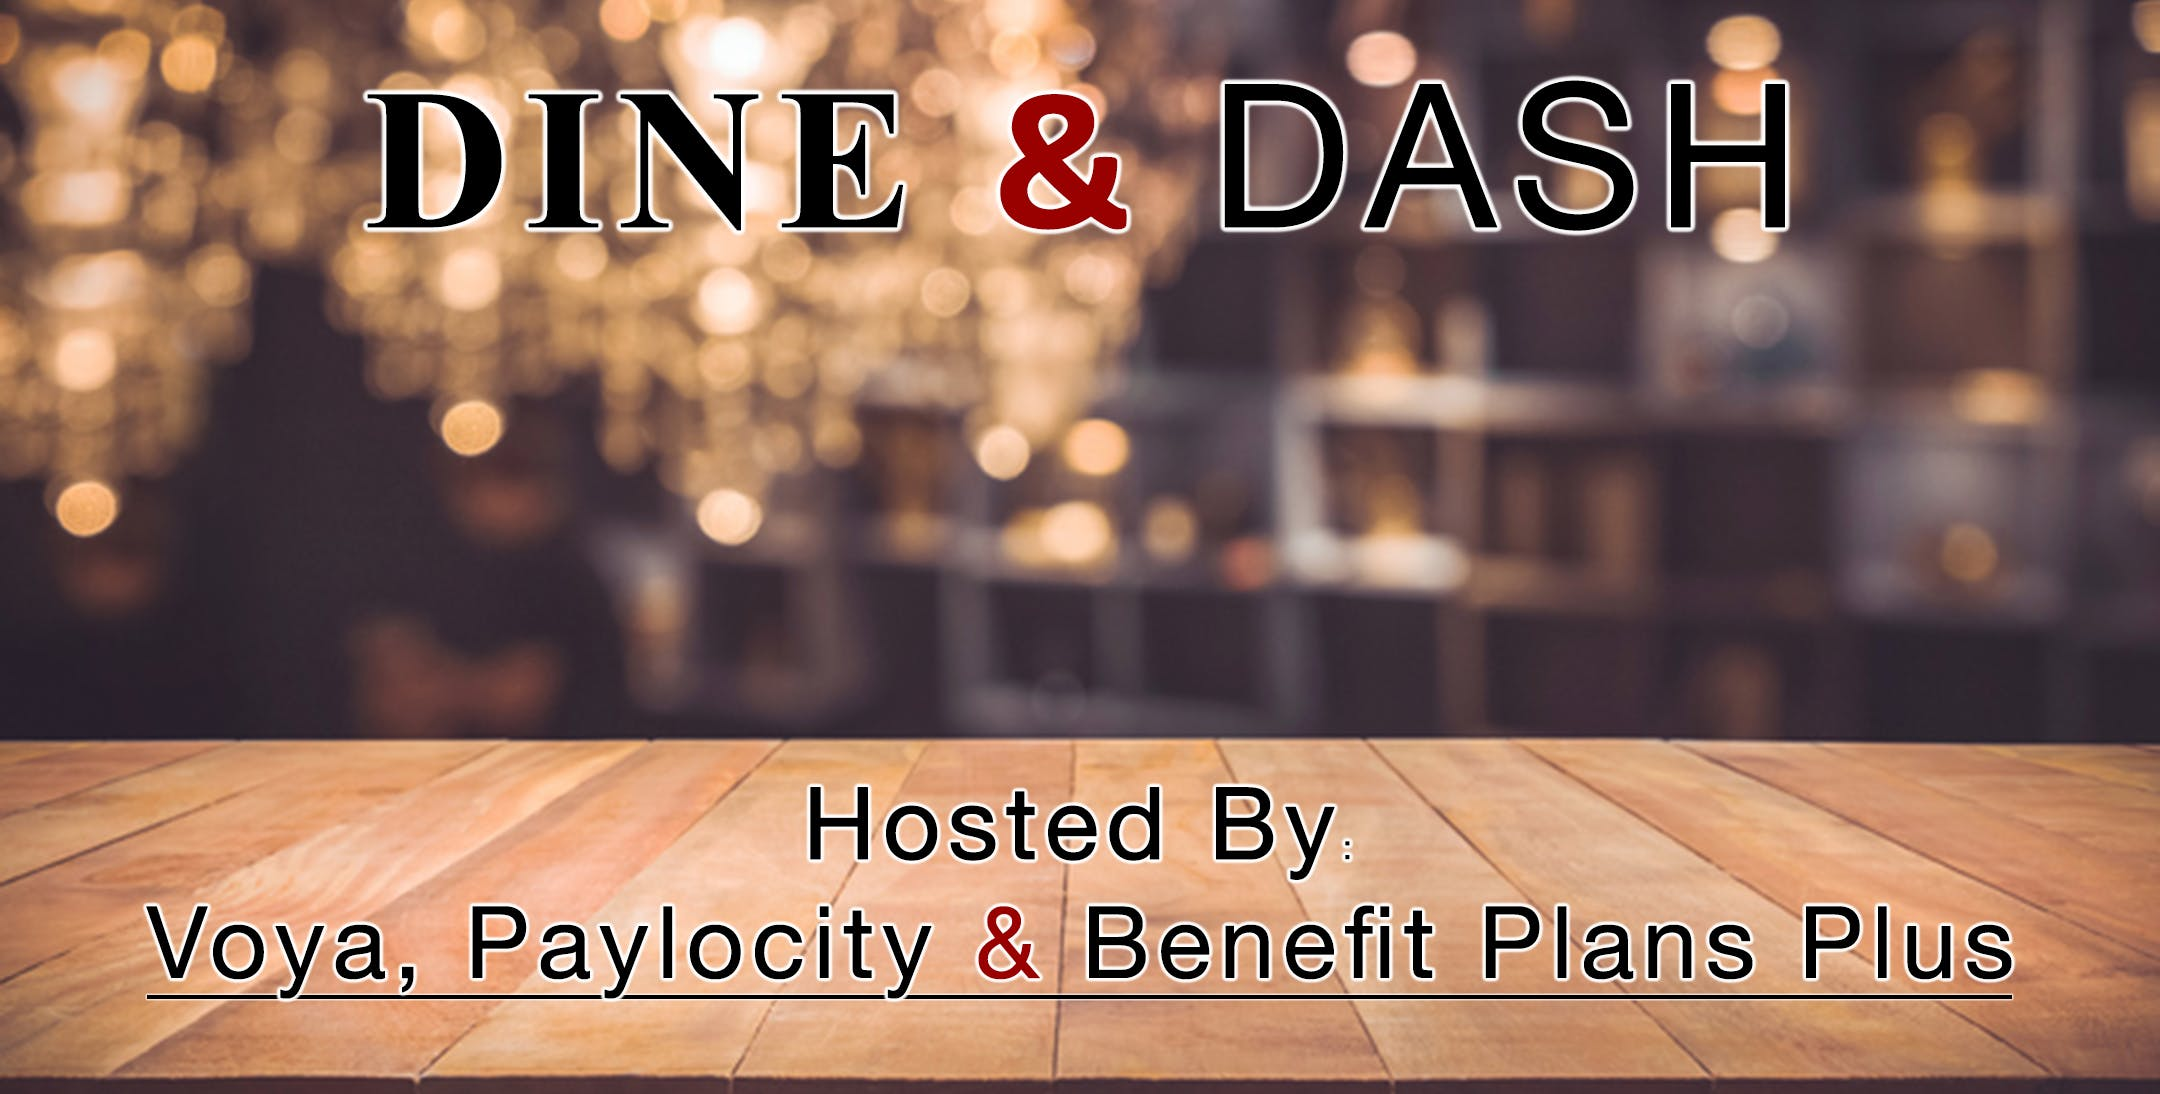 Dine and Dash, Voya, Paylocity and Benefit Pl